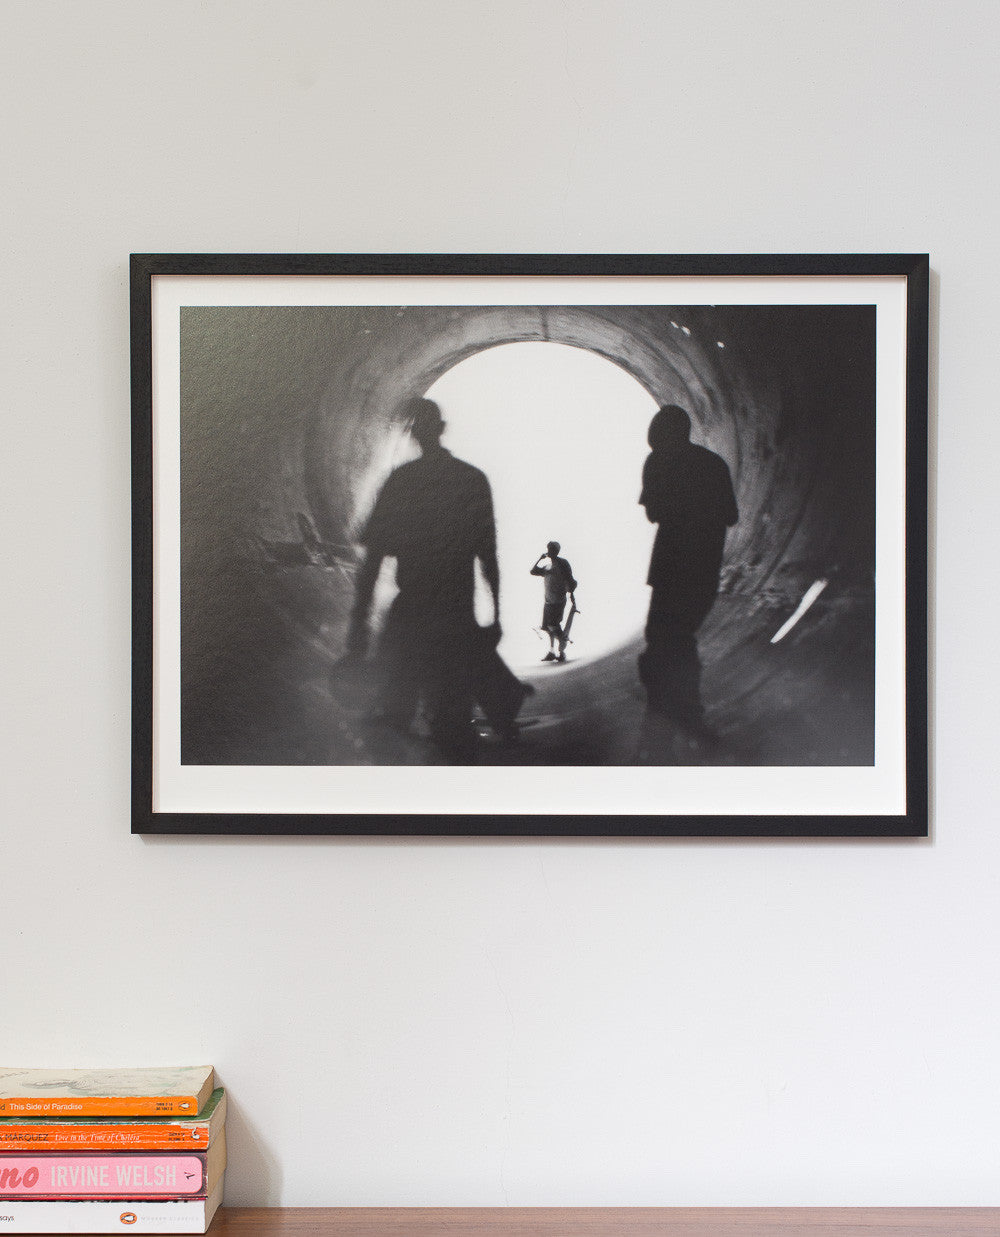 Photographic limited edition print by Irish photographer Rich Gilligan